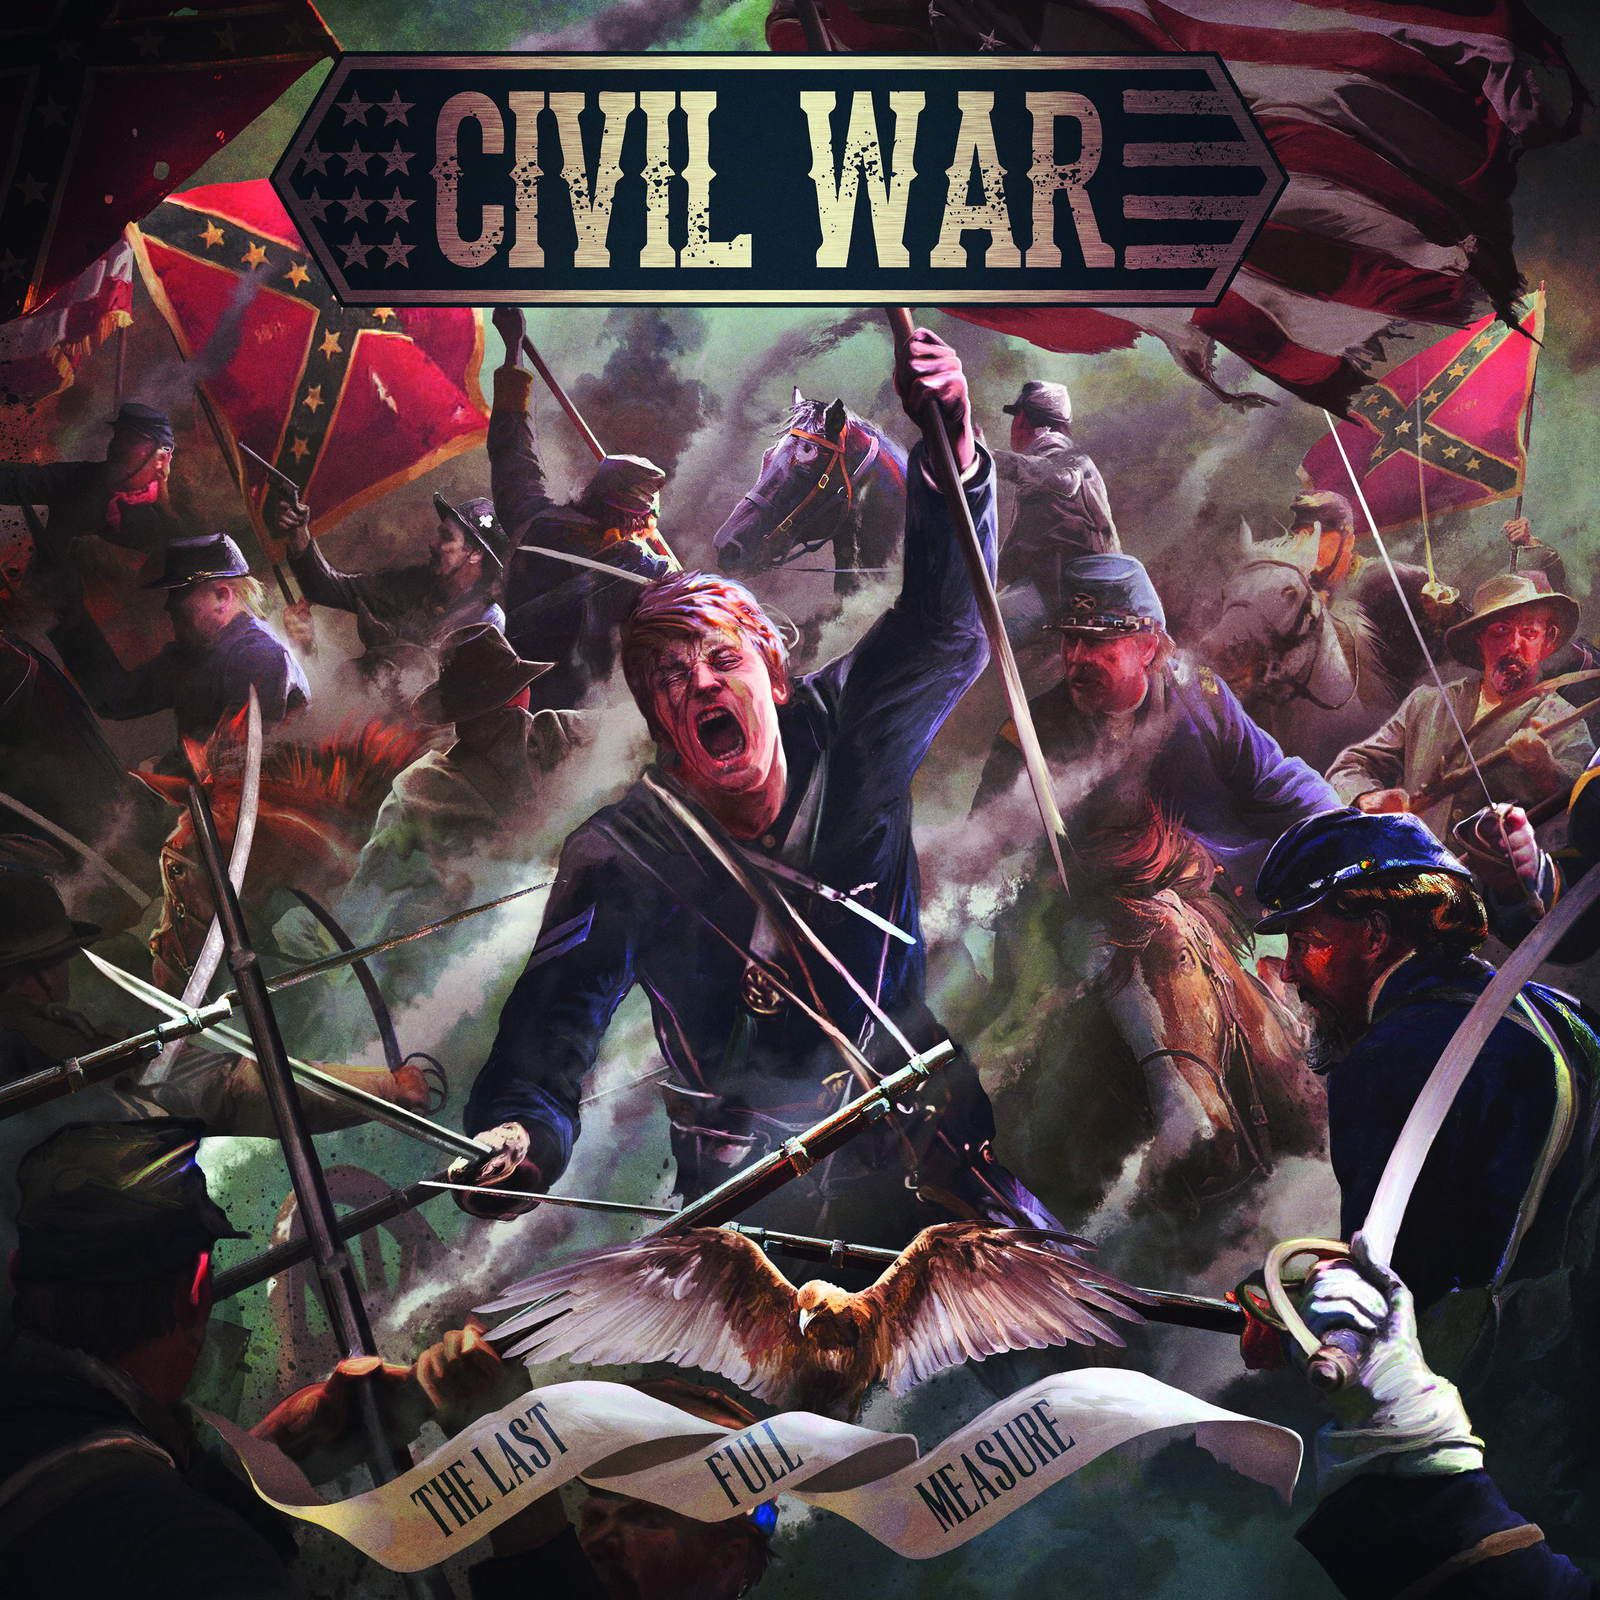 Civil war - The last full measure (English Lyrics)